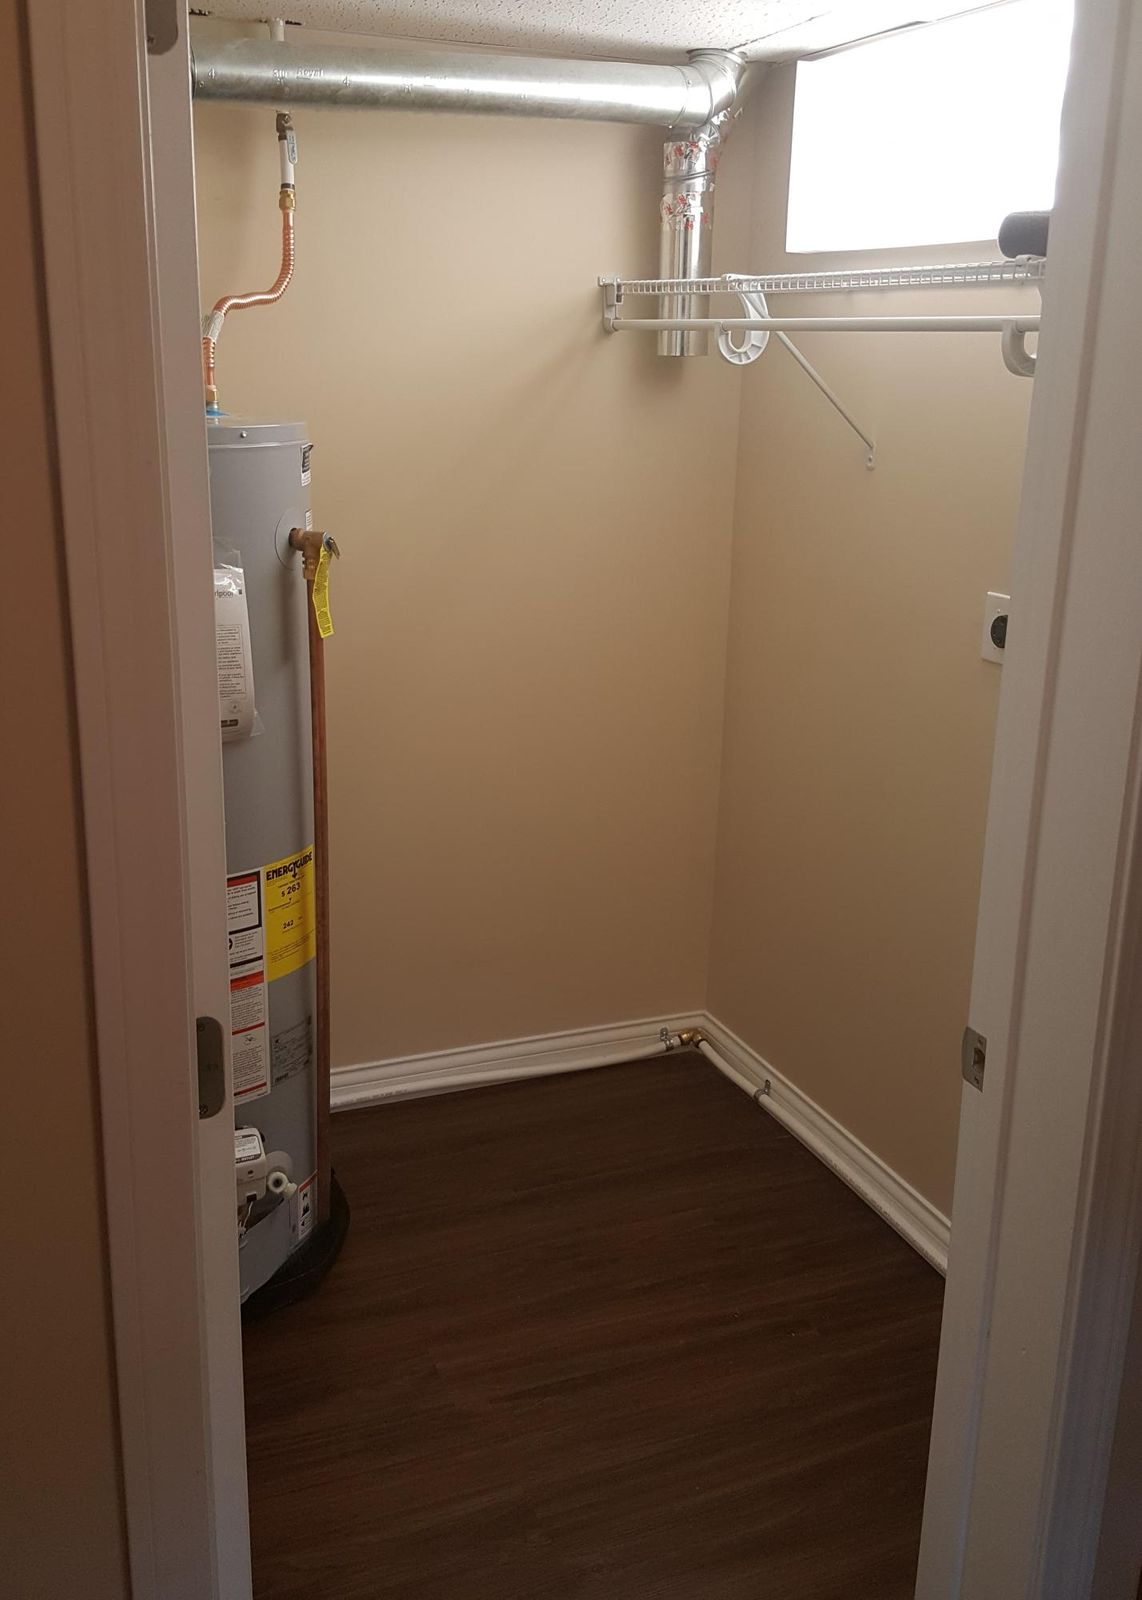 9 - Laundry Room - Remodeled